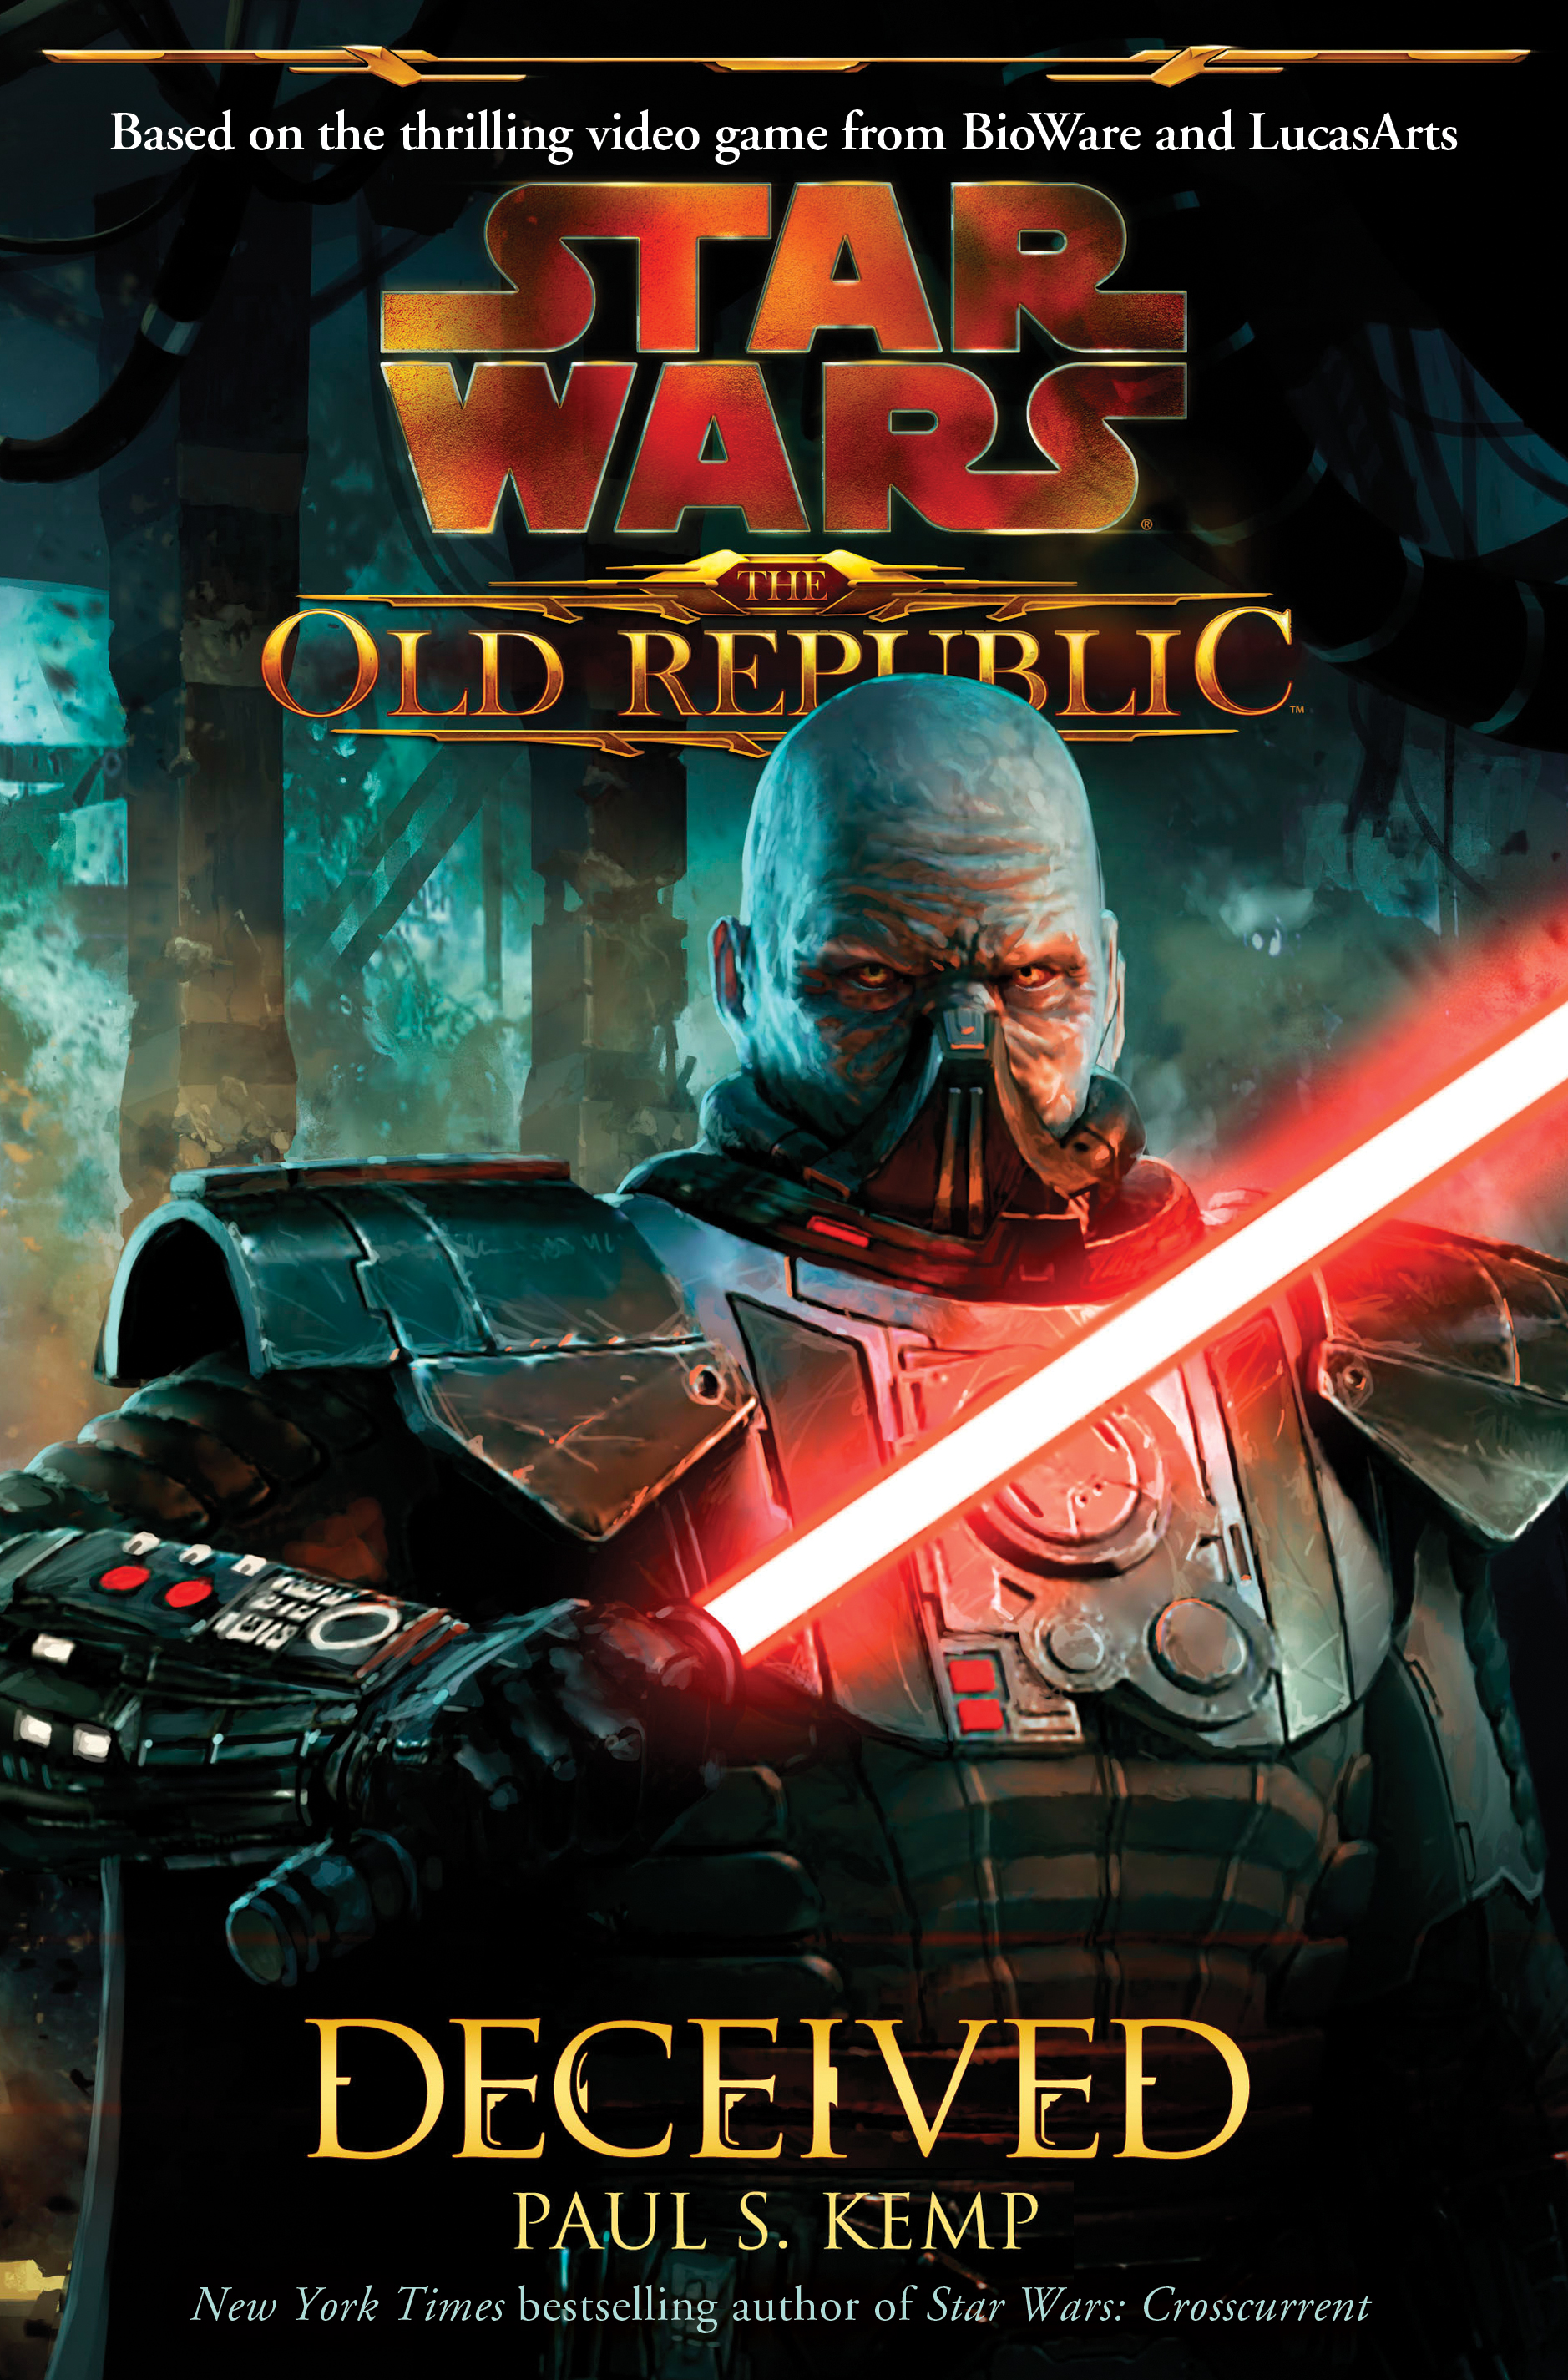 The Old Republic